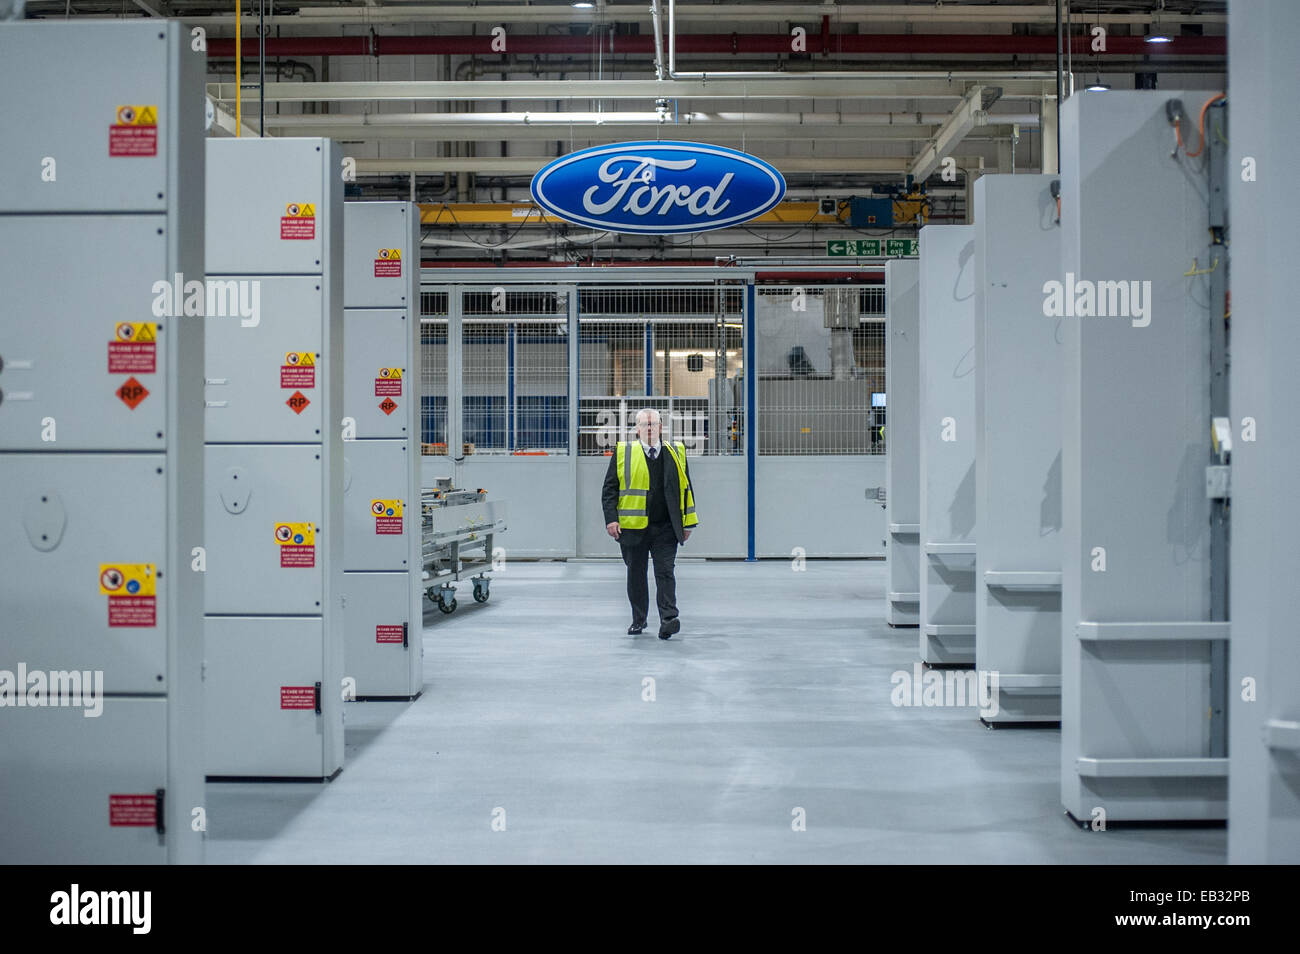 London Uk 25th November 2014 An Employee Of Ford Motor